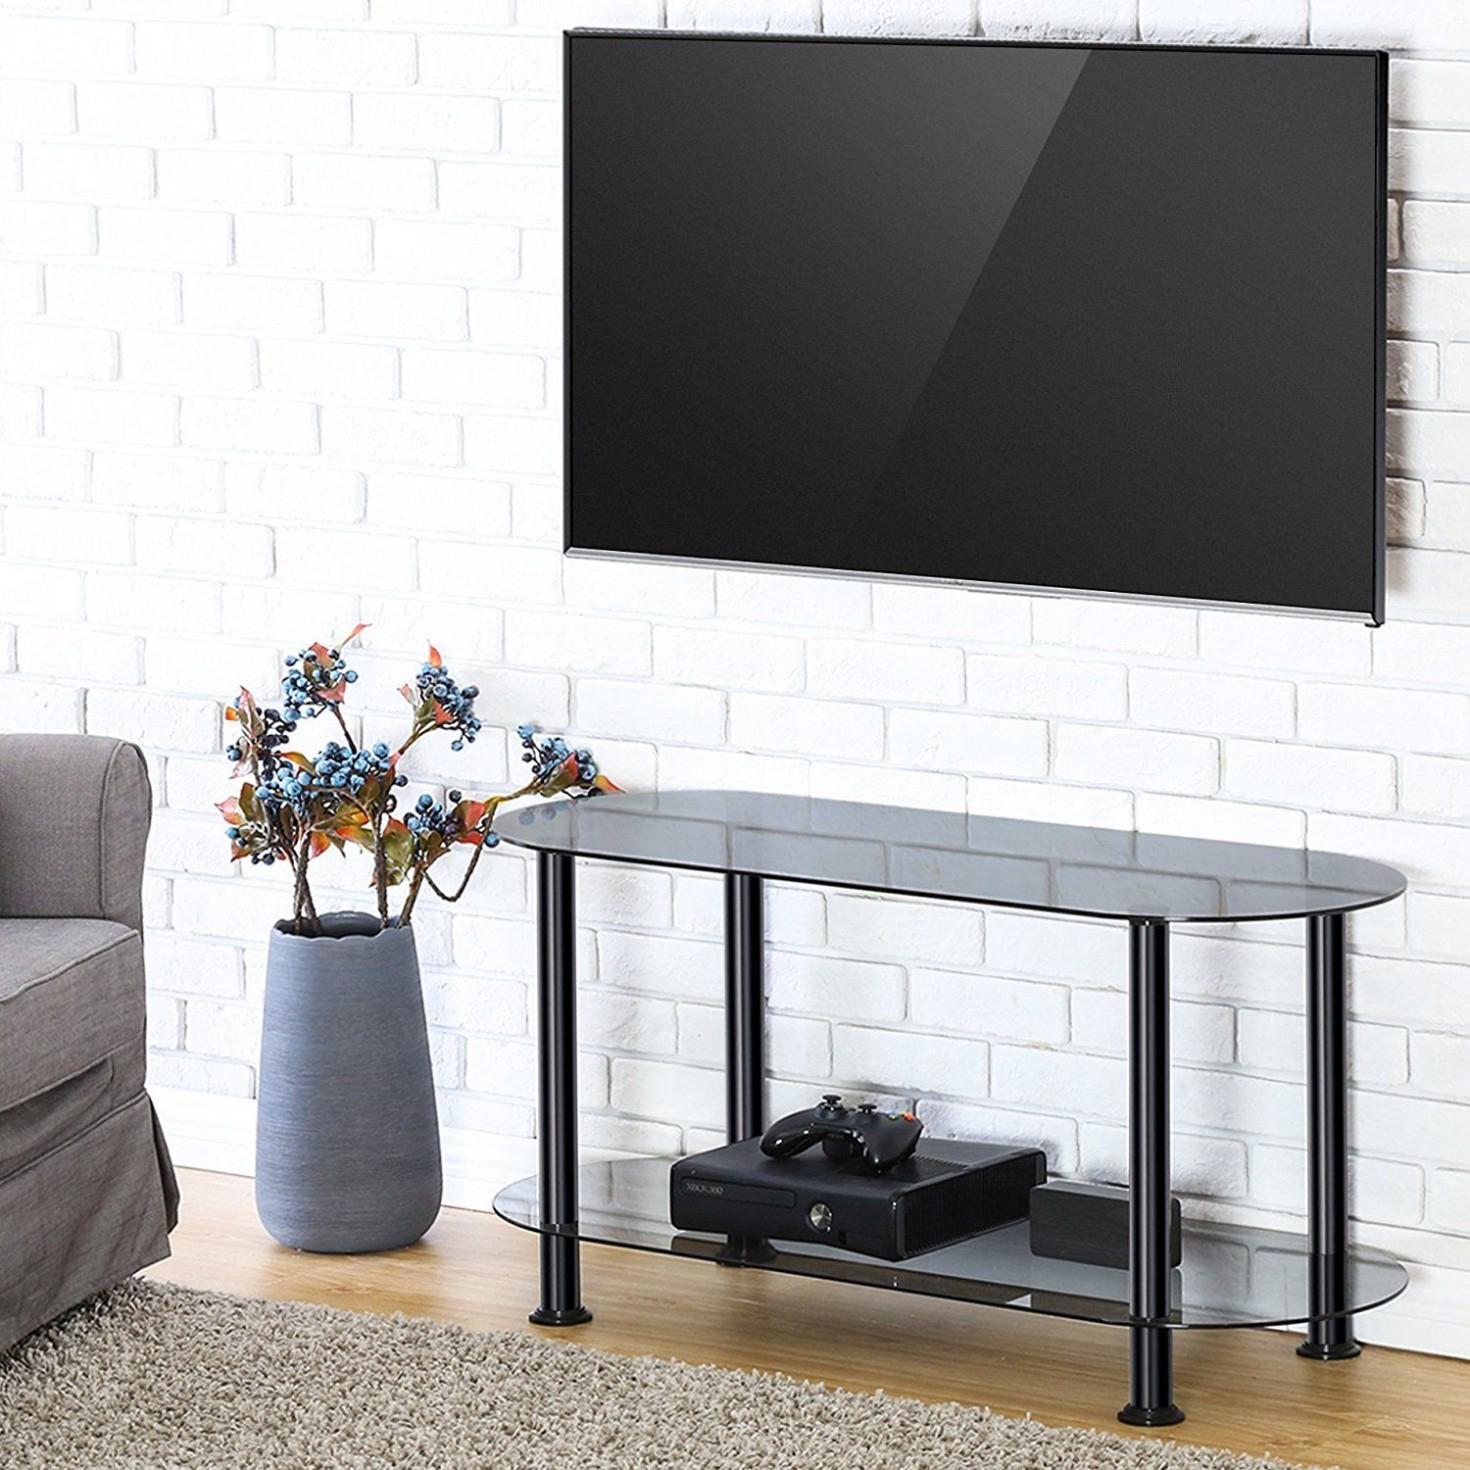 New Classic Grey Tempered Glass Tv Stand Suit For Up To 46 Inch Lcd Regarding Sinclair Grey 74 Inch Tv Stands (View 17 of 30)